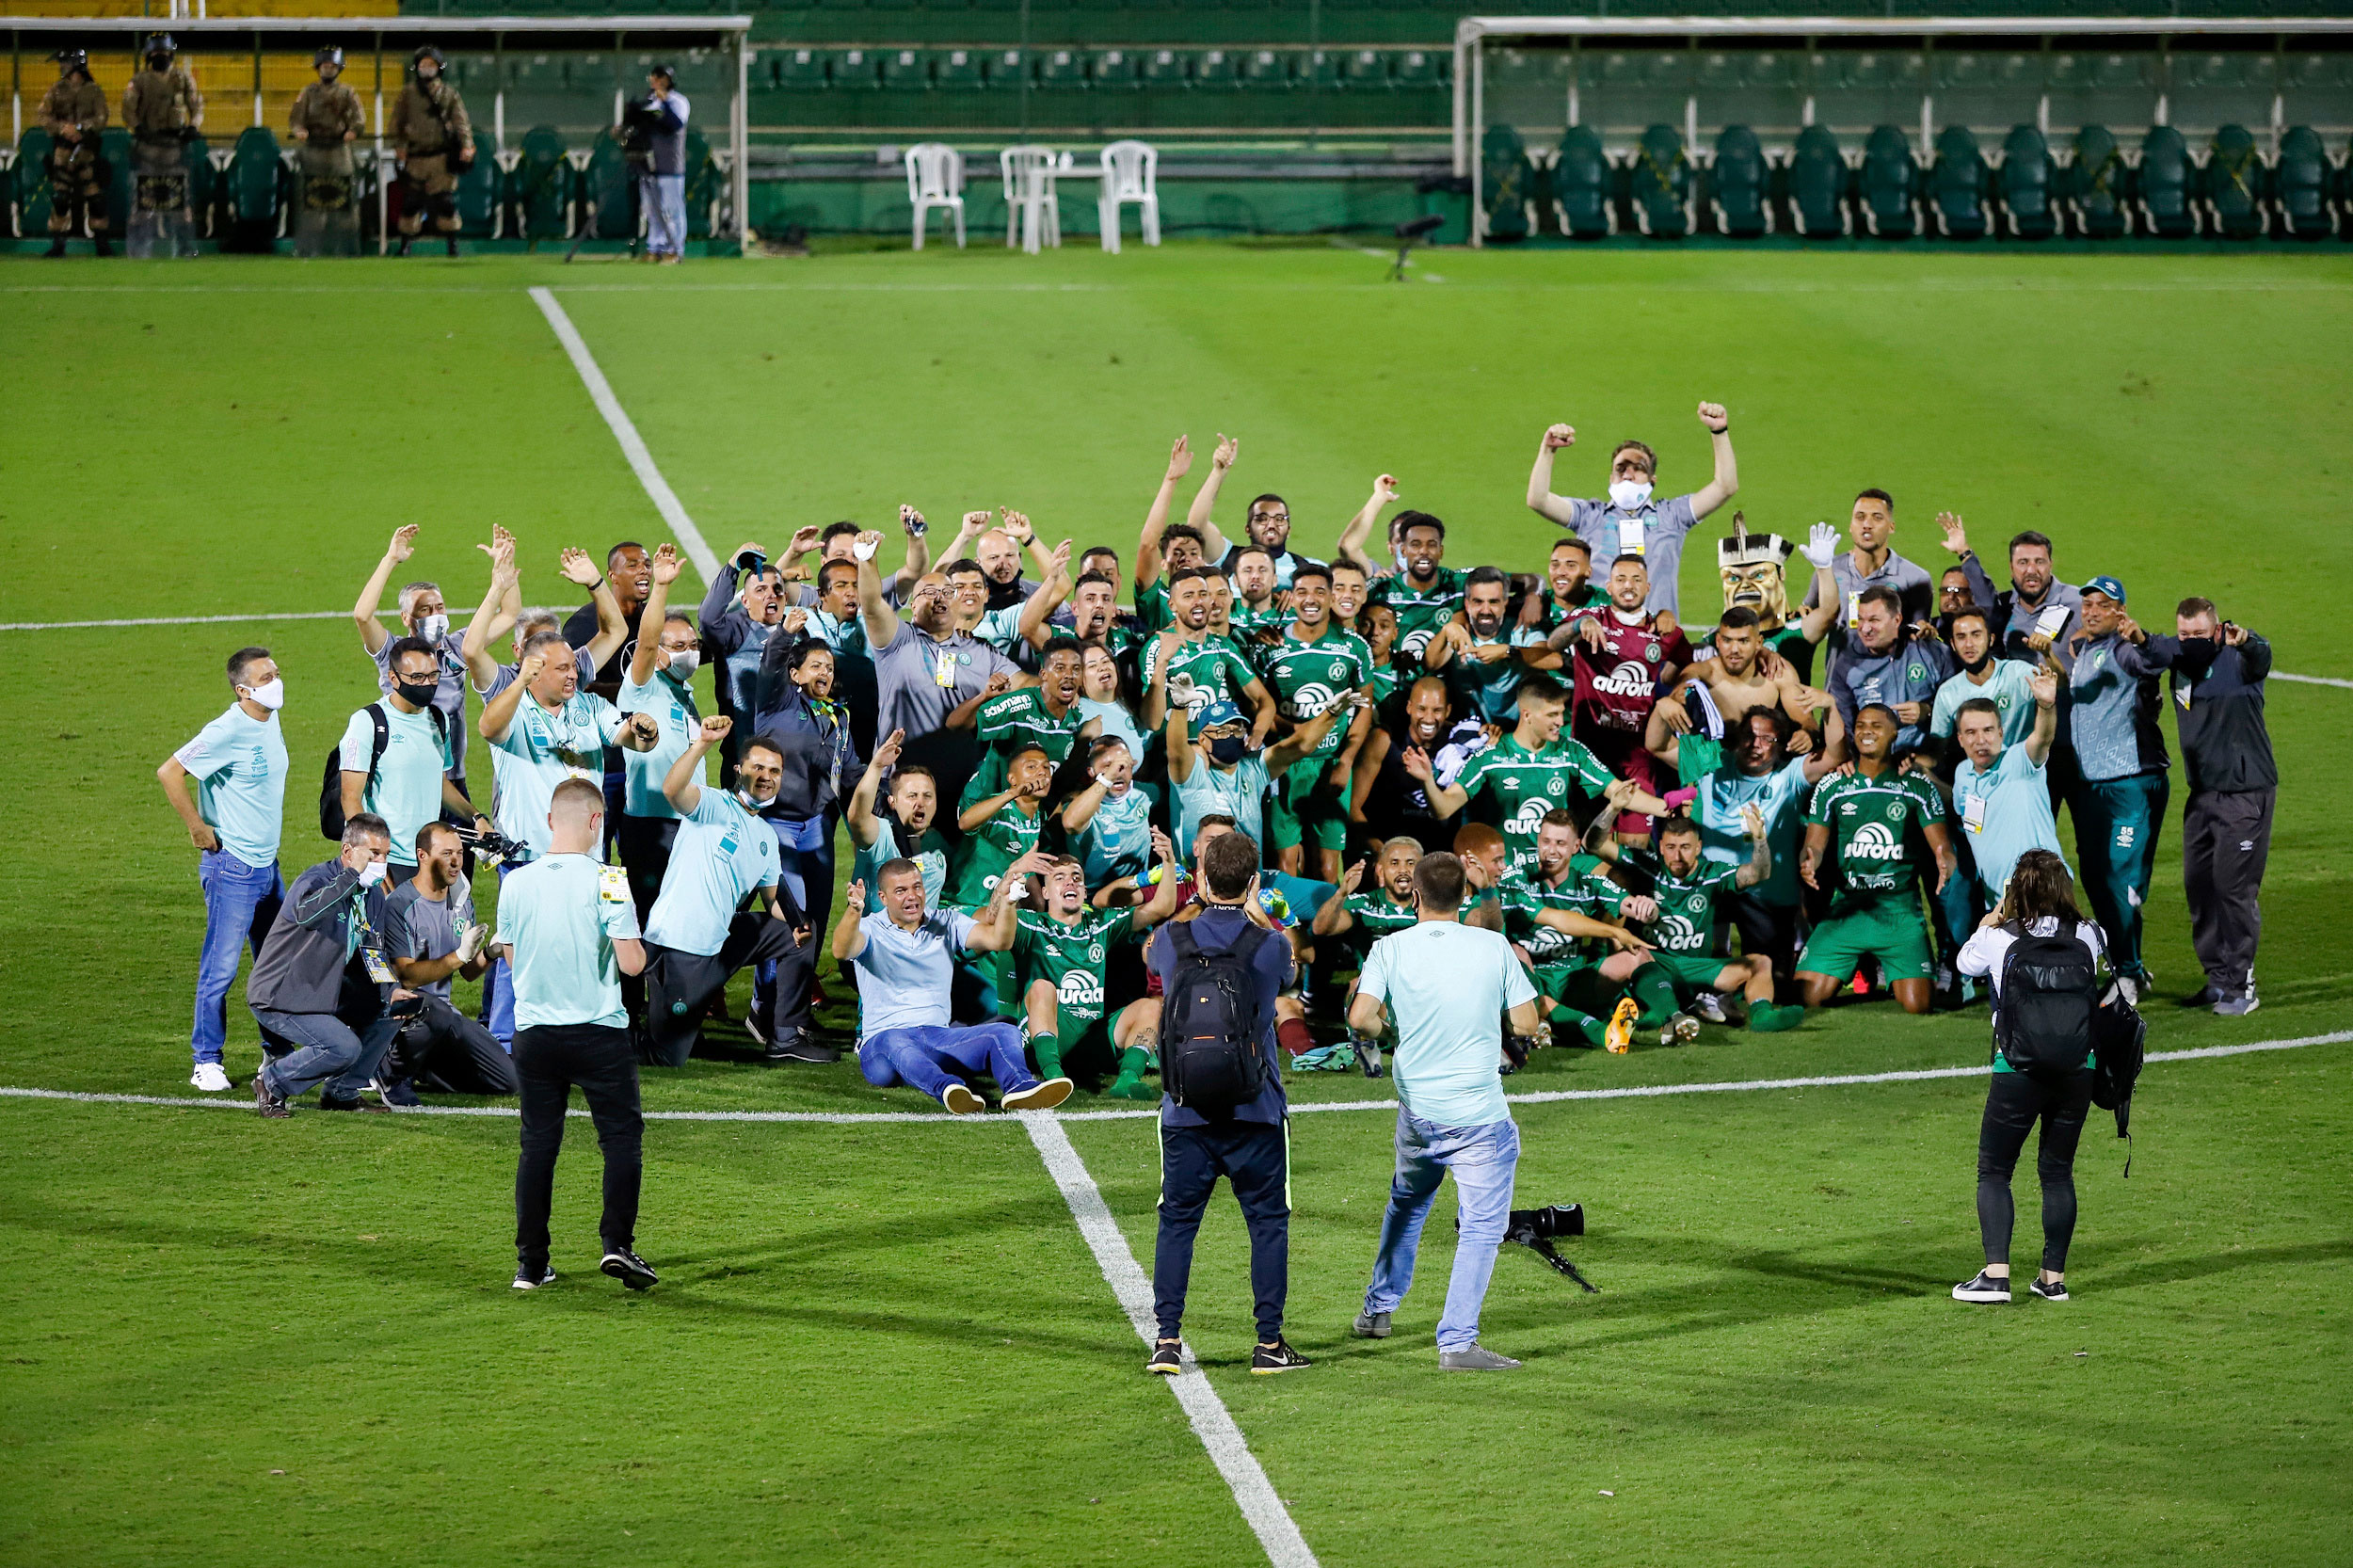 Chapecoense earns promotion back to Brazil's top division